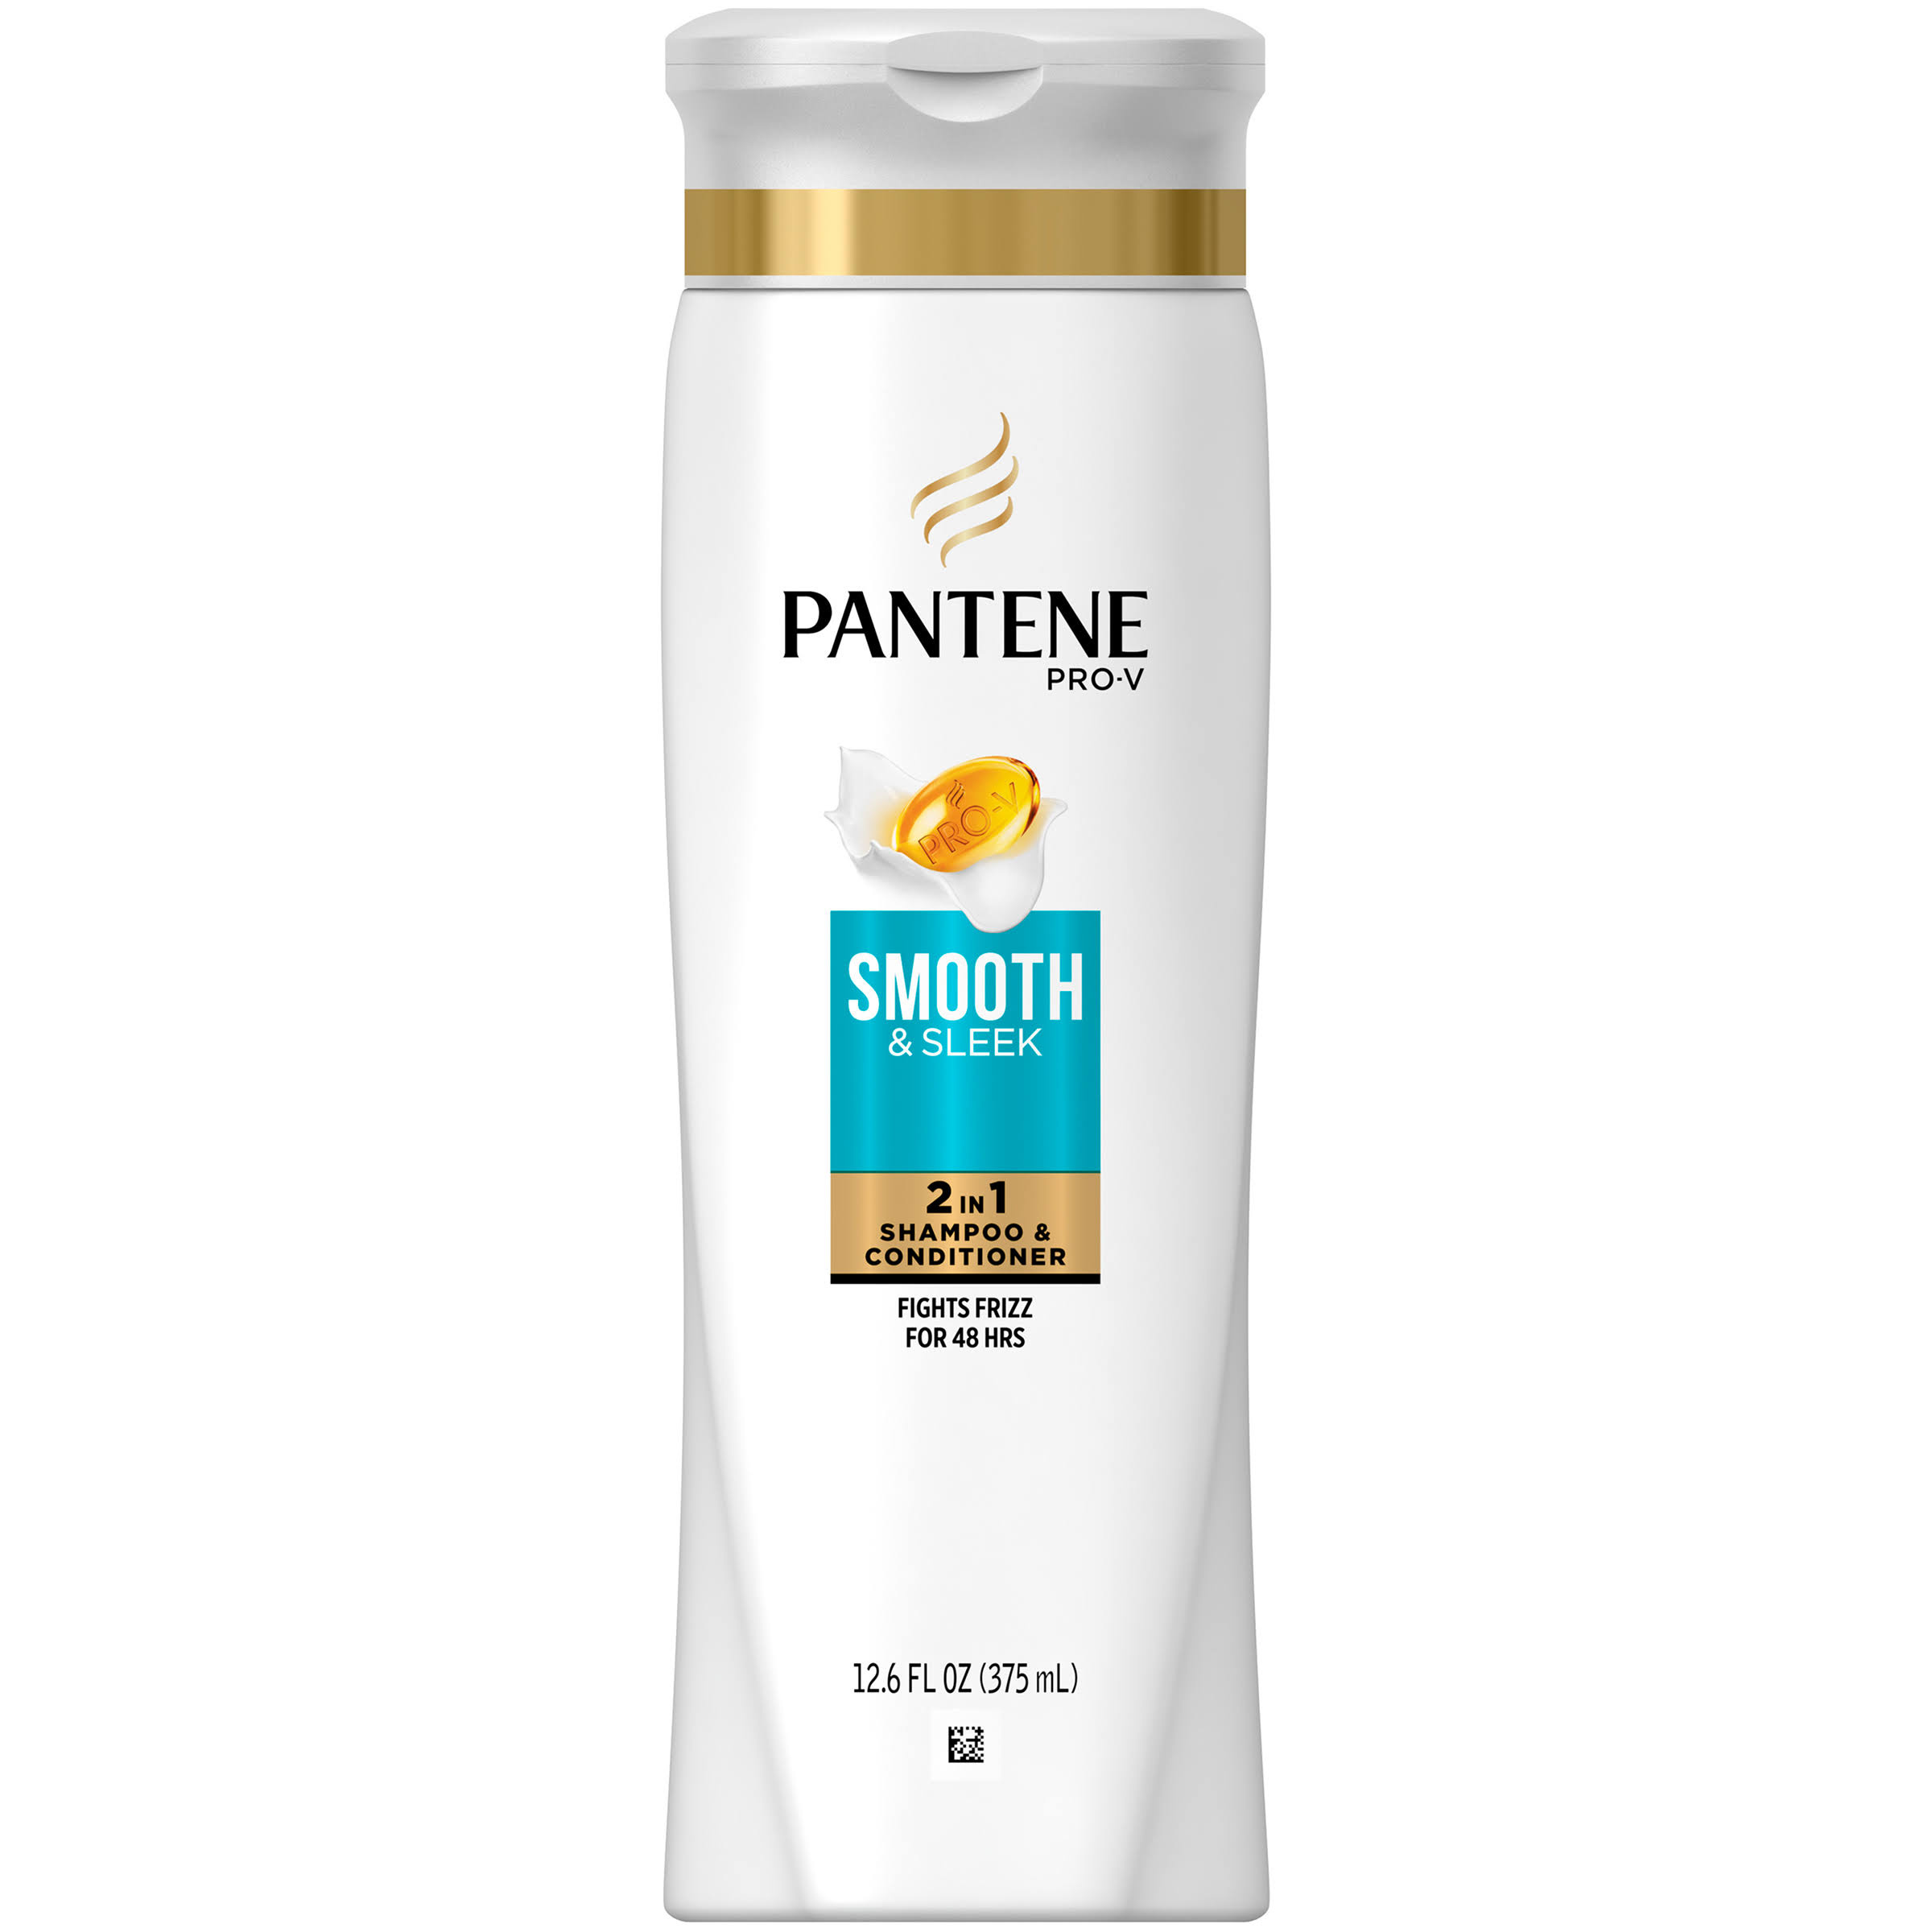 Pantene Pro V Smooth and Sleek 2 in 1 Shampoo and Conditioner - 12.6oz